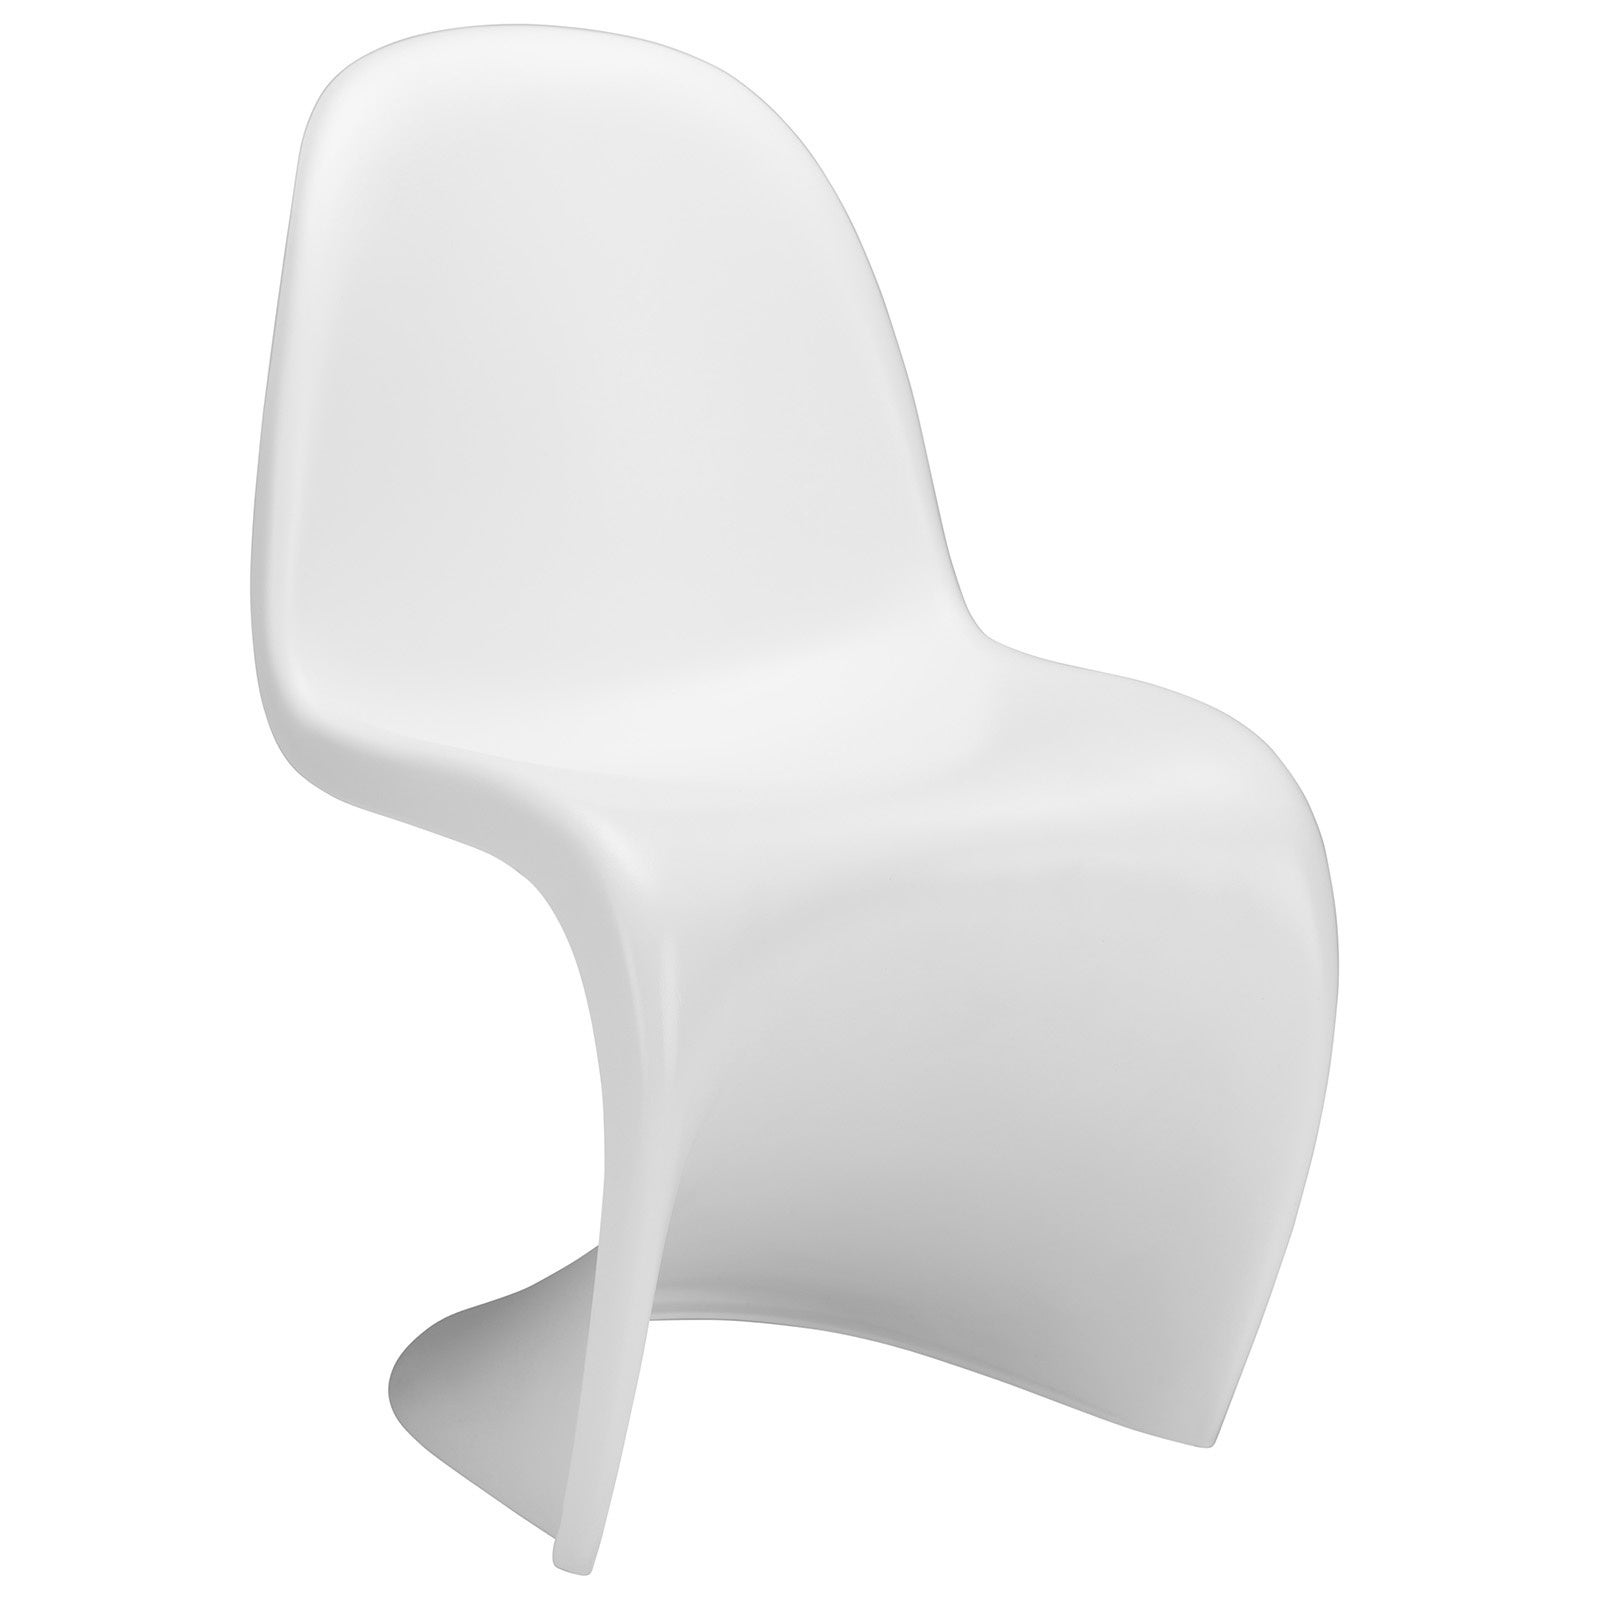 Poly and Bark Verner Panton Style S White ABS Plastic Sta...